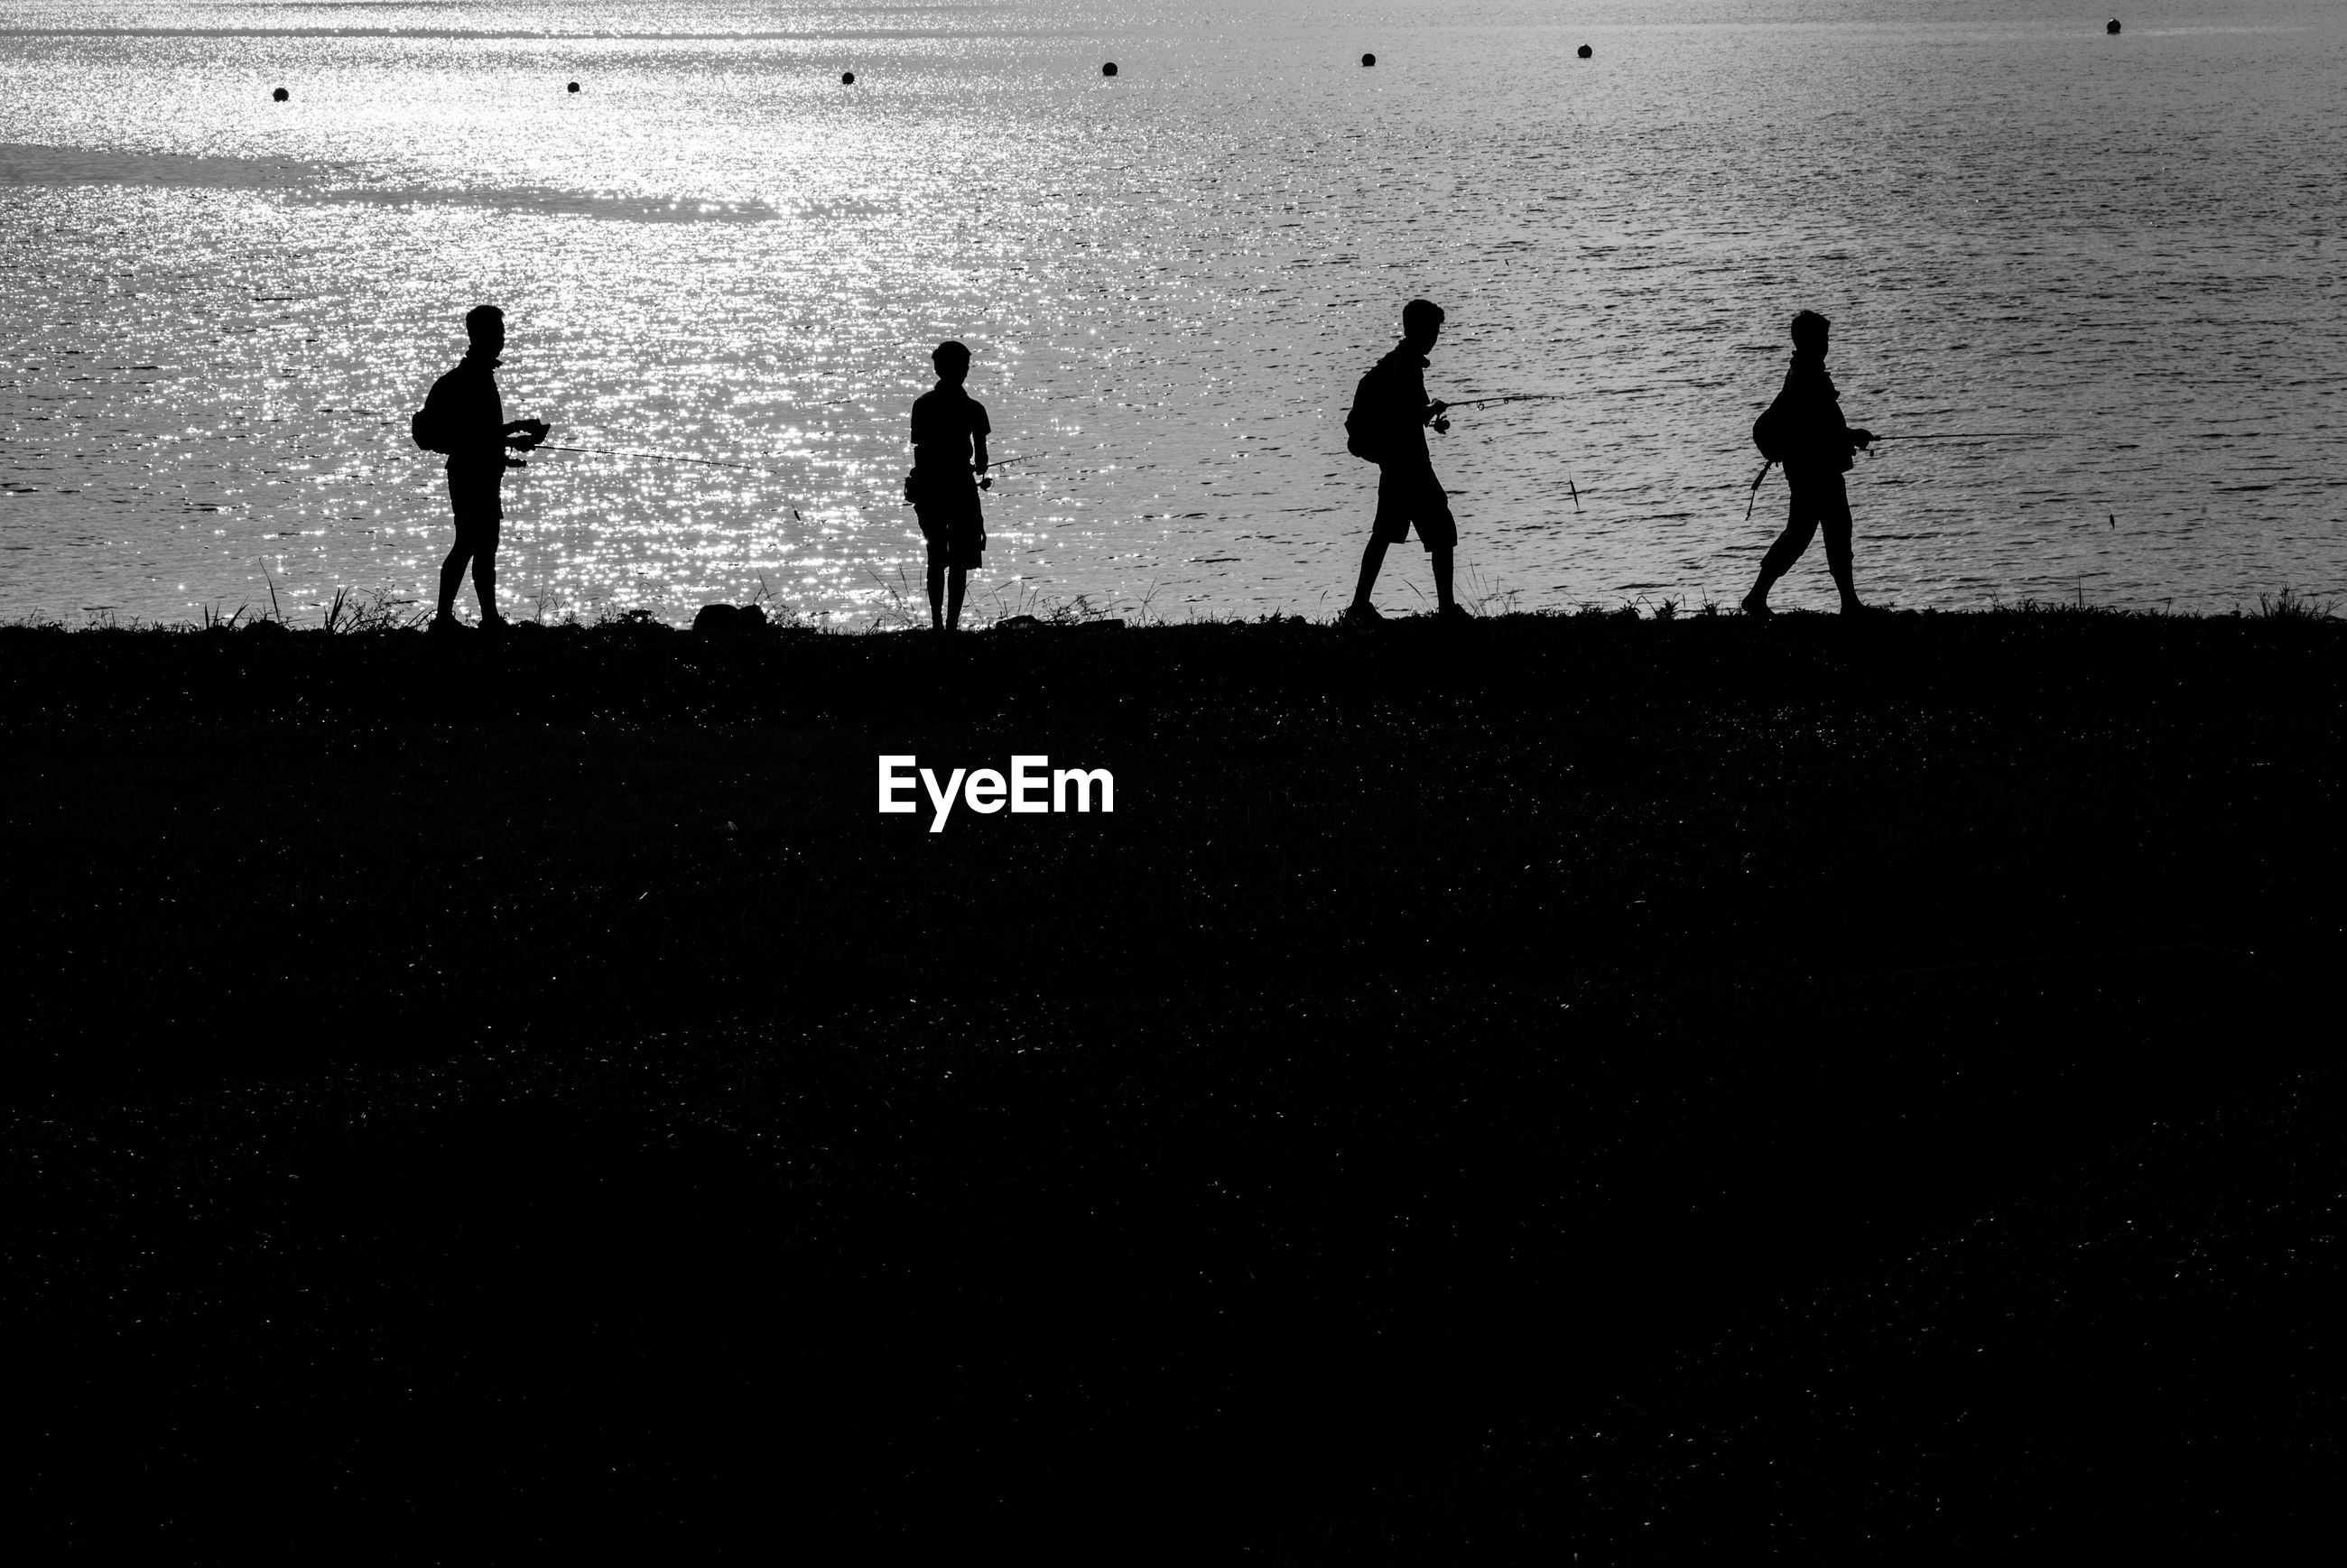 silhouette, men, togetherness, lifestyles, leisure activity, walking, person, large group of people, medium group of people, bonding, standing, friendship, water, outline, outdoors, shadow